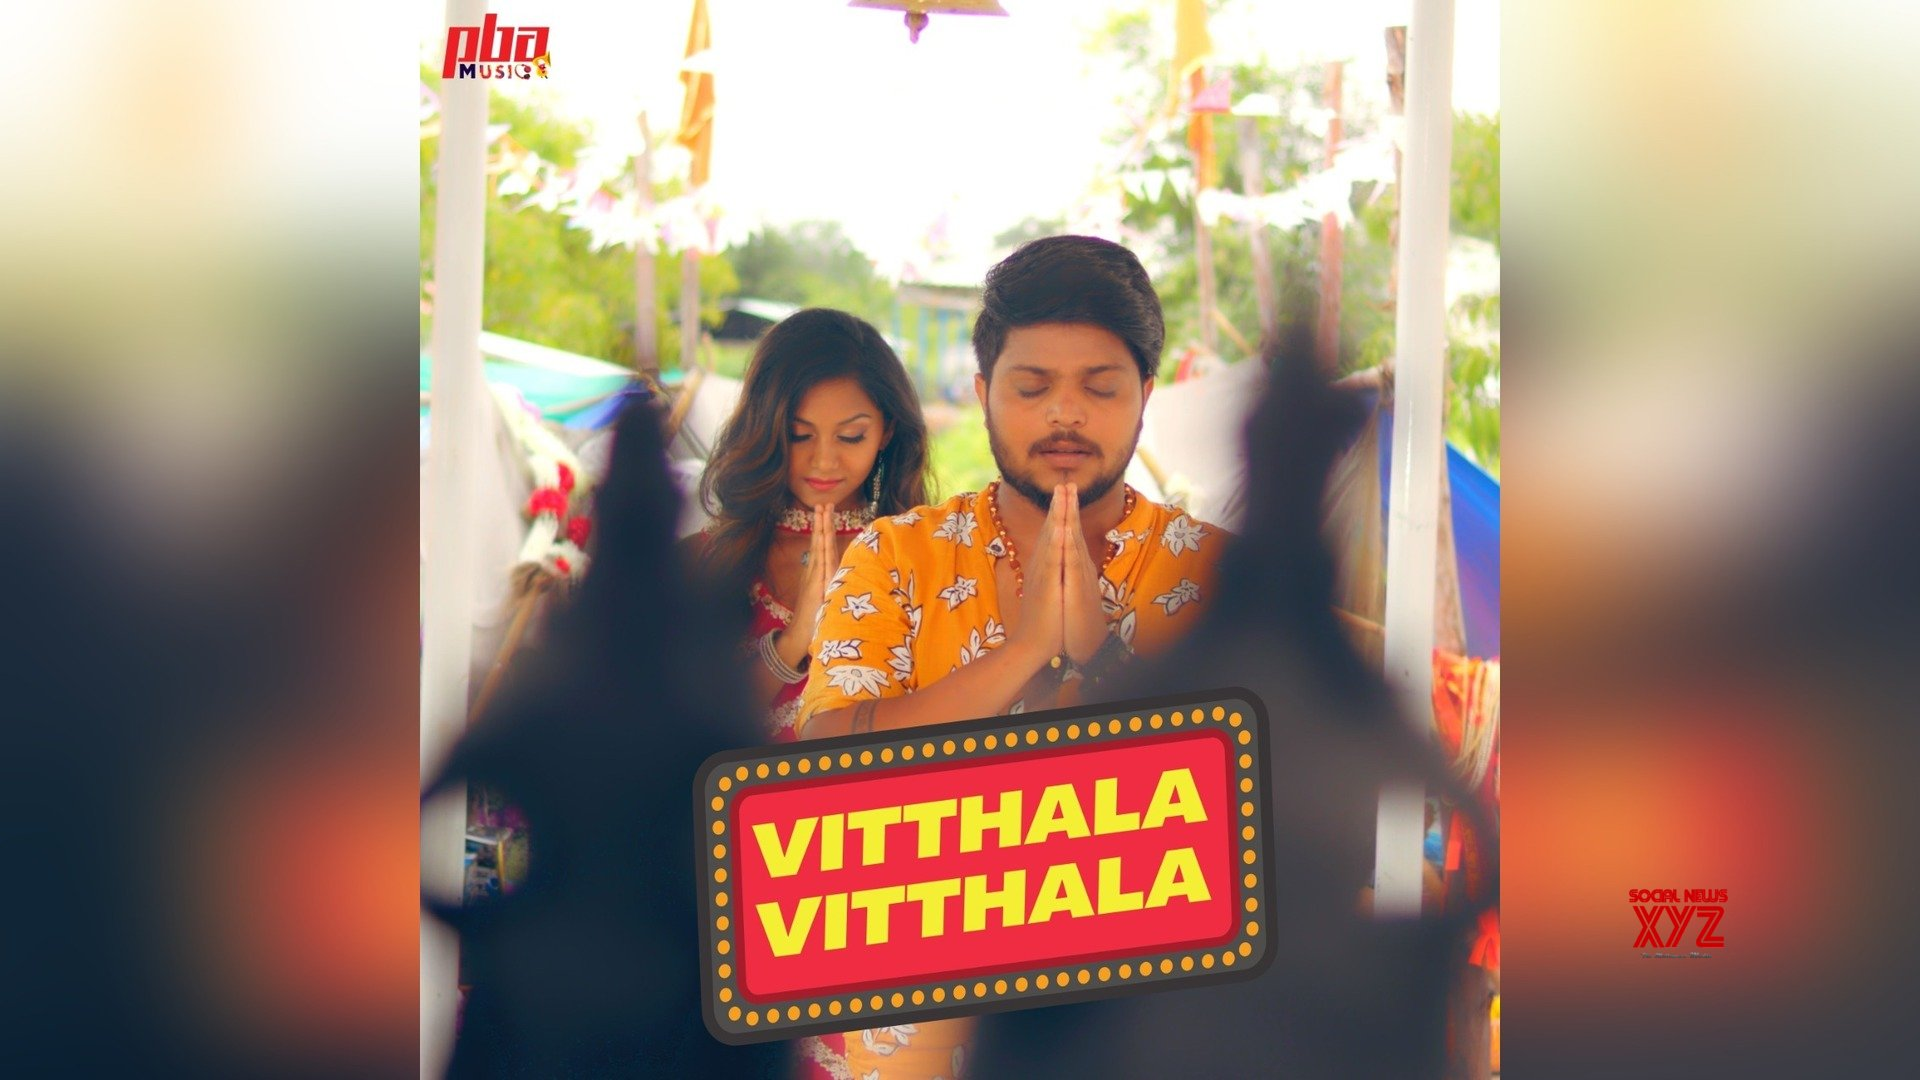 """Song """"Vitthala Vitthala"""" 's actors Rohan Mane and Tejaswini Wagh share their experiences and fun times"""